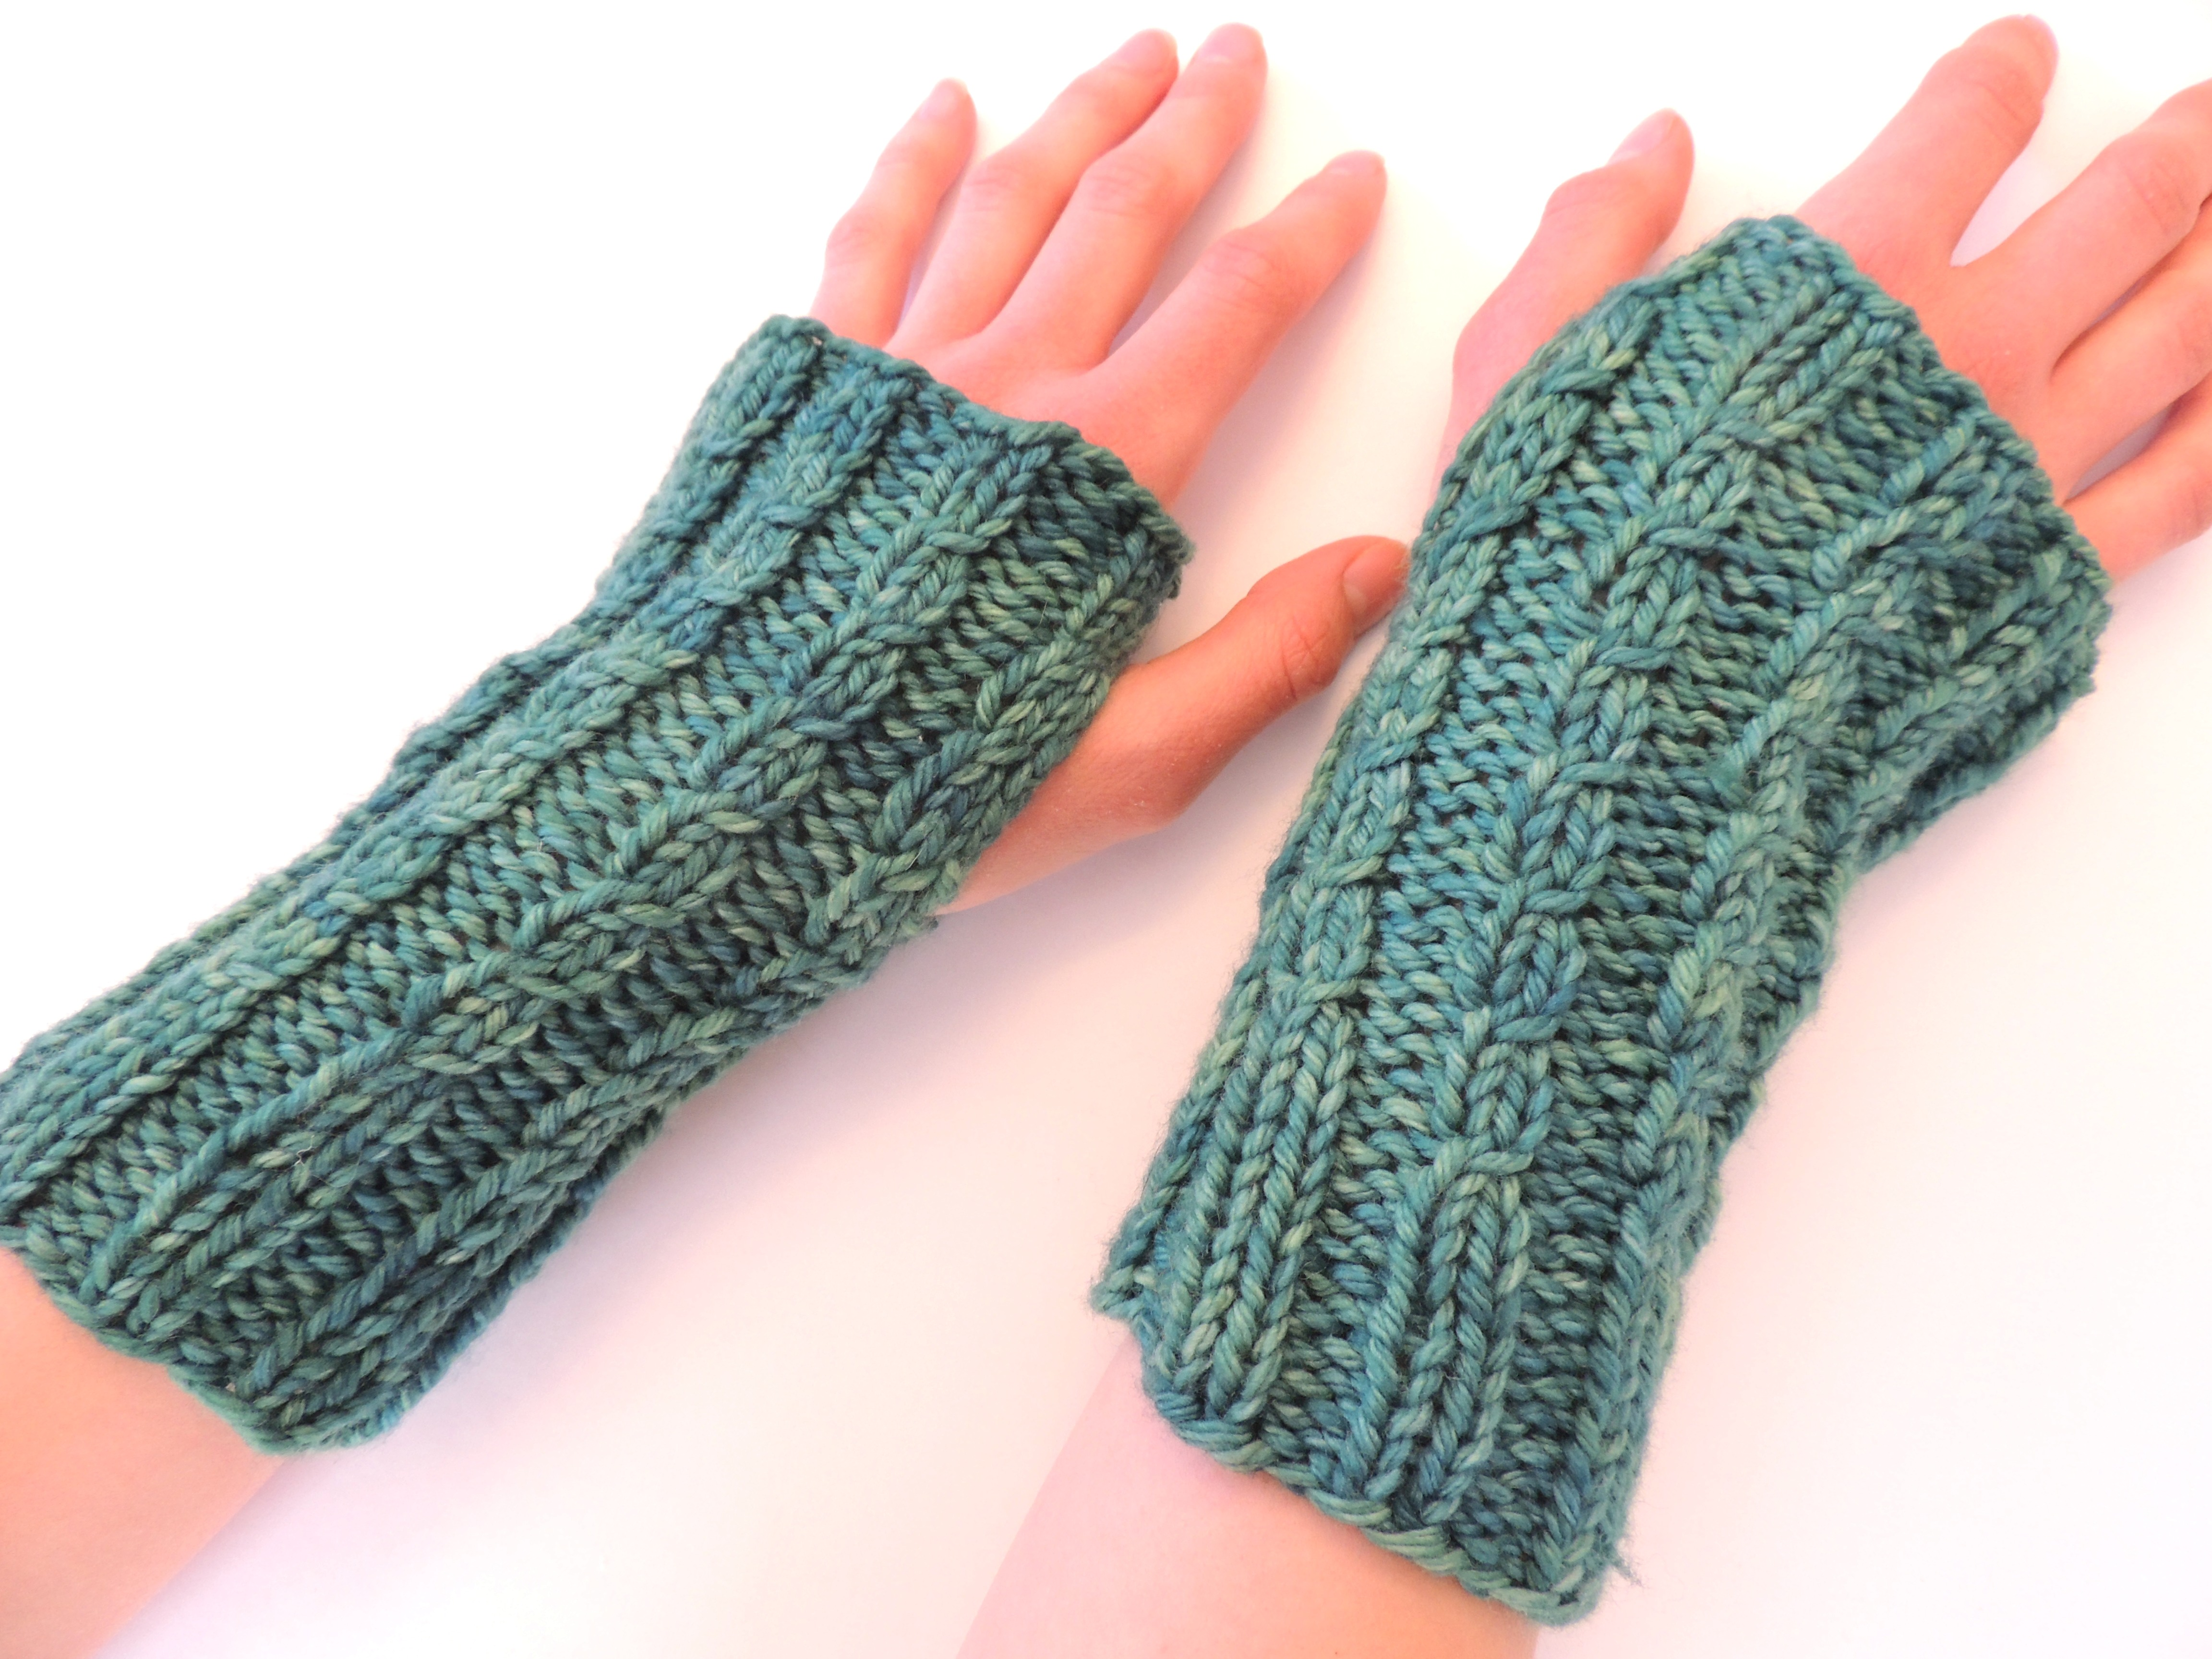 Knitting Pattern For Cable Gloves : New Knitting Pattern?Calming Cables Fingerless Gloves Valerie Baber Designs...